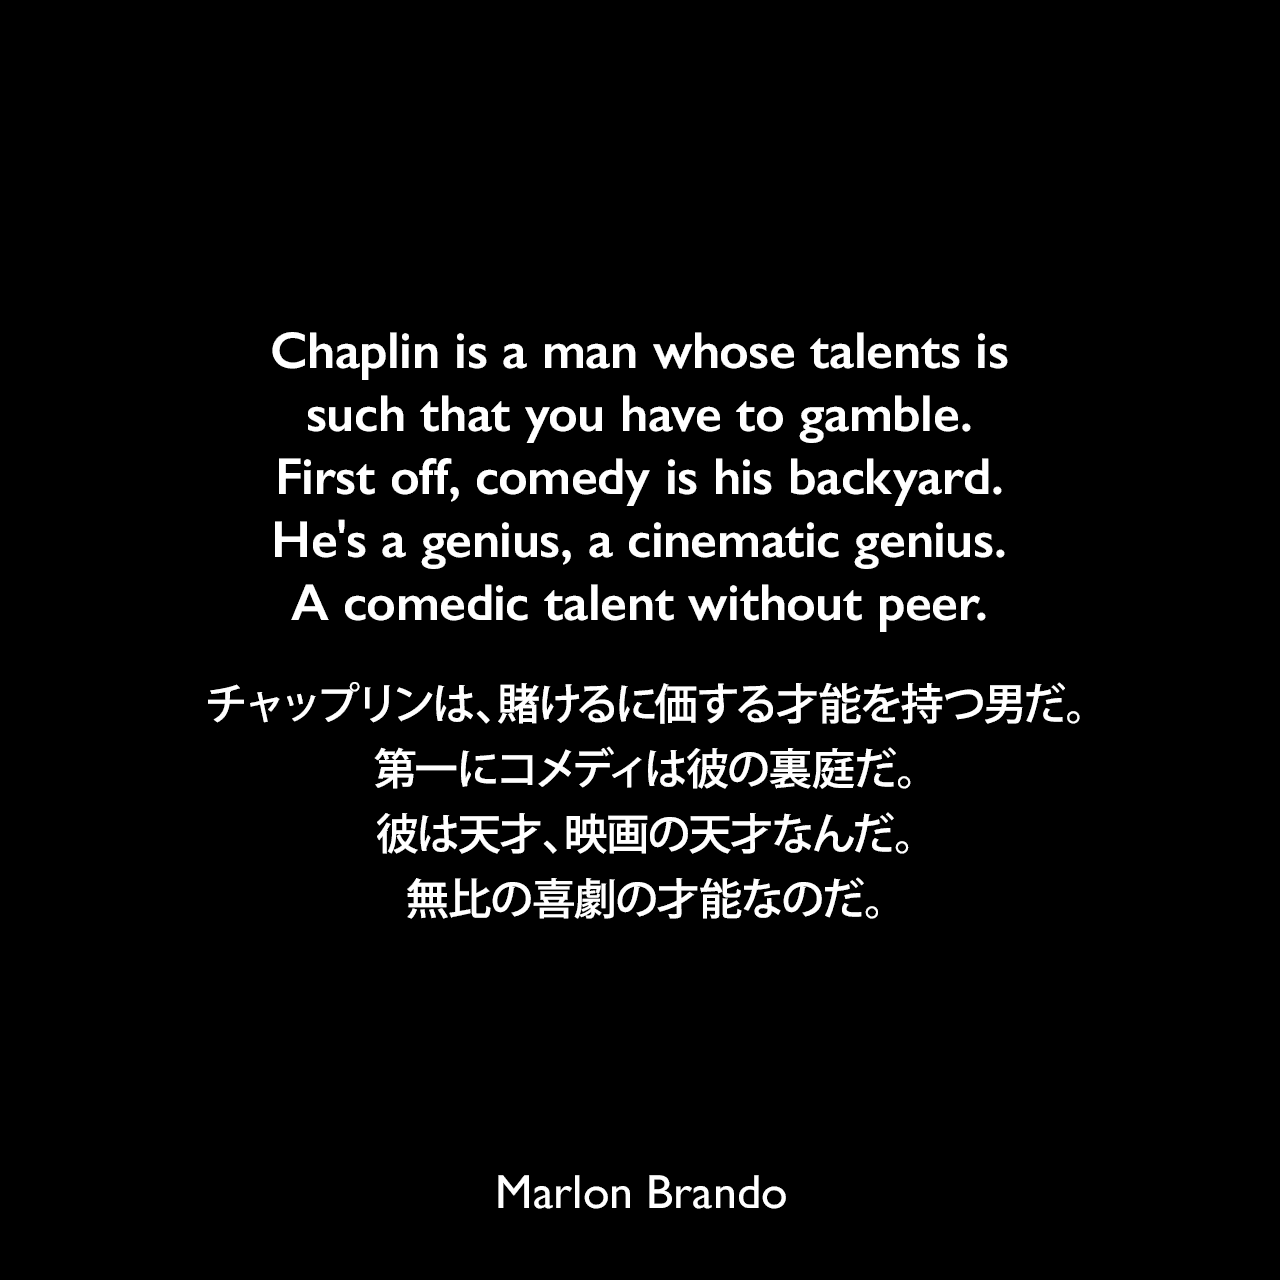 Chaplin is a man whose talents is such that you have to gamble. First off, comedy is his backyard. He's a genius, a cinematic genius. A comedic talent without peer.チャップリンは、賭けるに価する才能を持つ男だ。第一にコメディは彼の裏庭だ。彼は天才、映画の天才なんだ。無比の喜劇の才能なのだ。- Rolling Stone誌 No. 213 (1976年) よりMarlon Brando